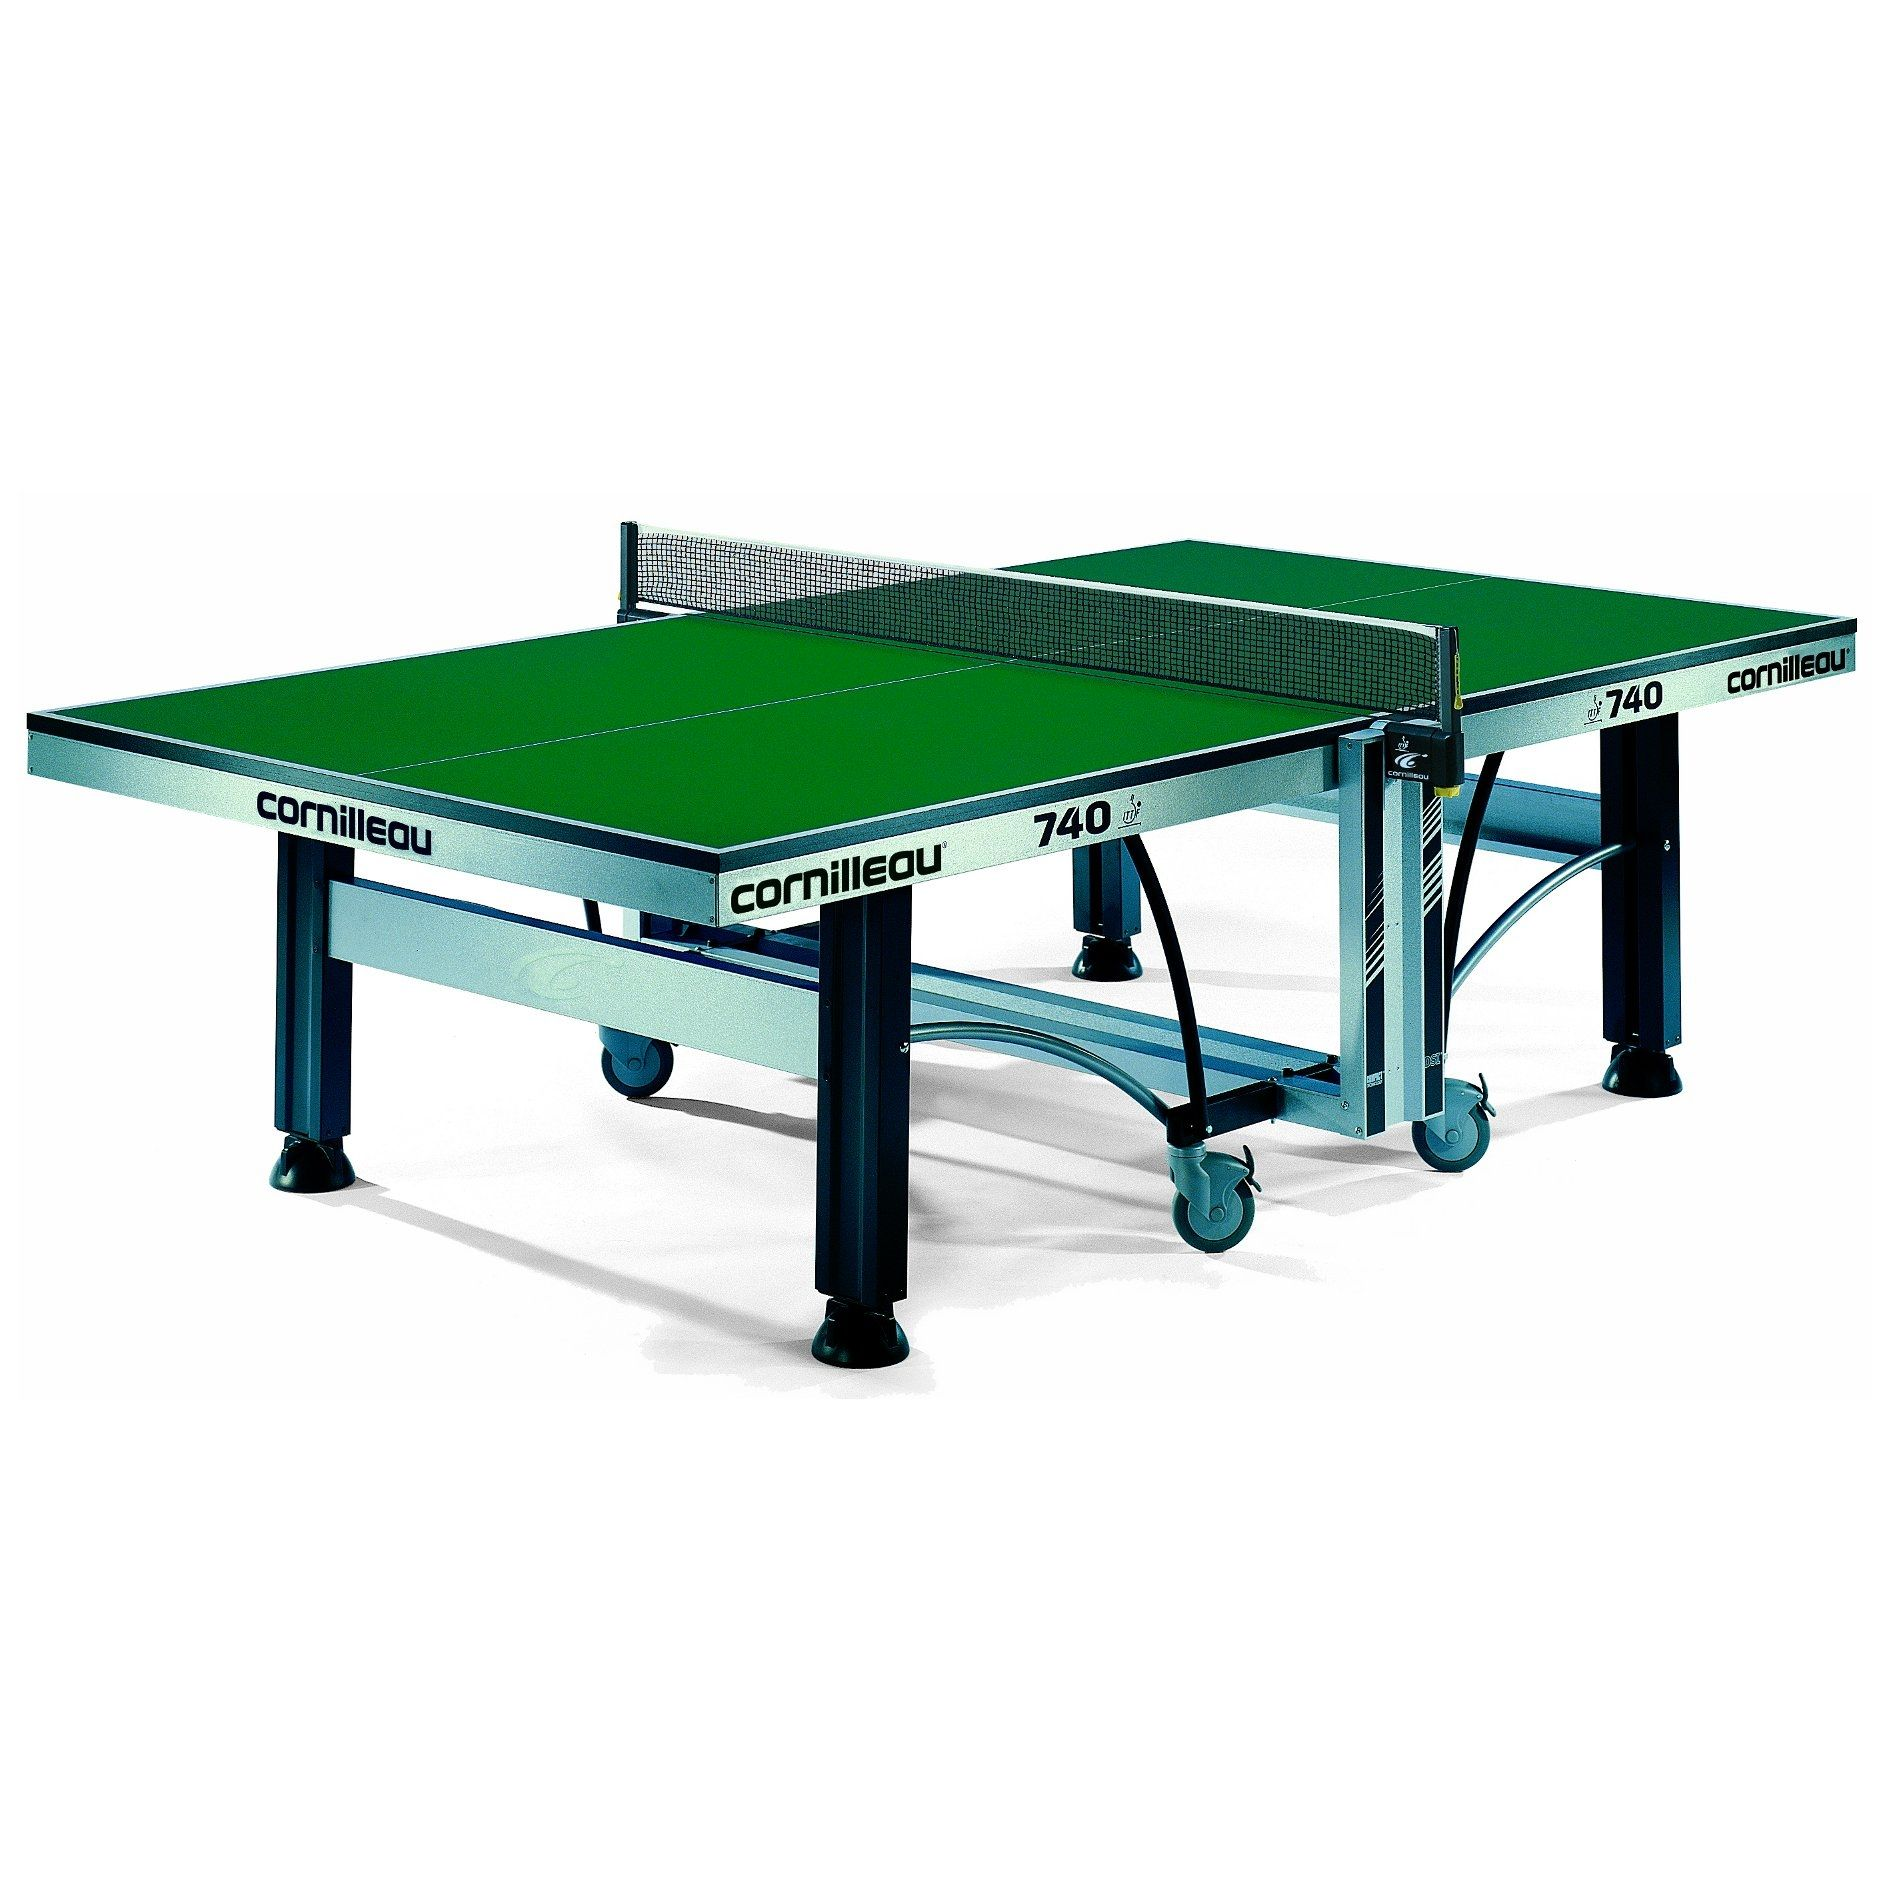 cornilleau ittf competition 740 rollaway table tennis table. Black Bedroom Furniture Sets. Home Design Ideas